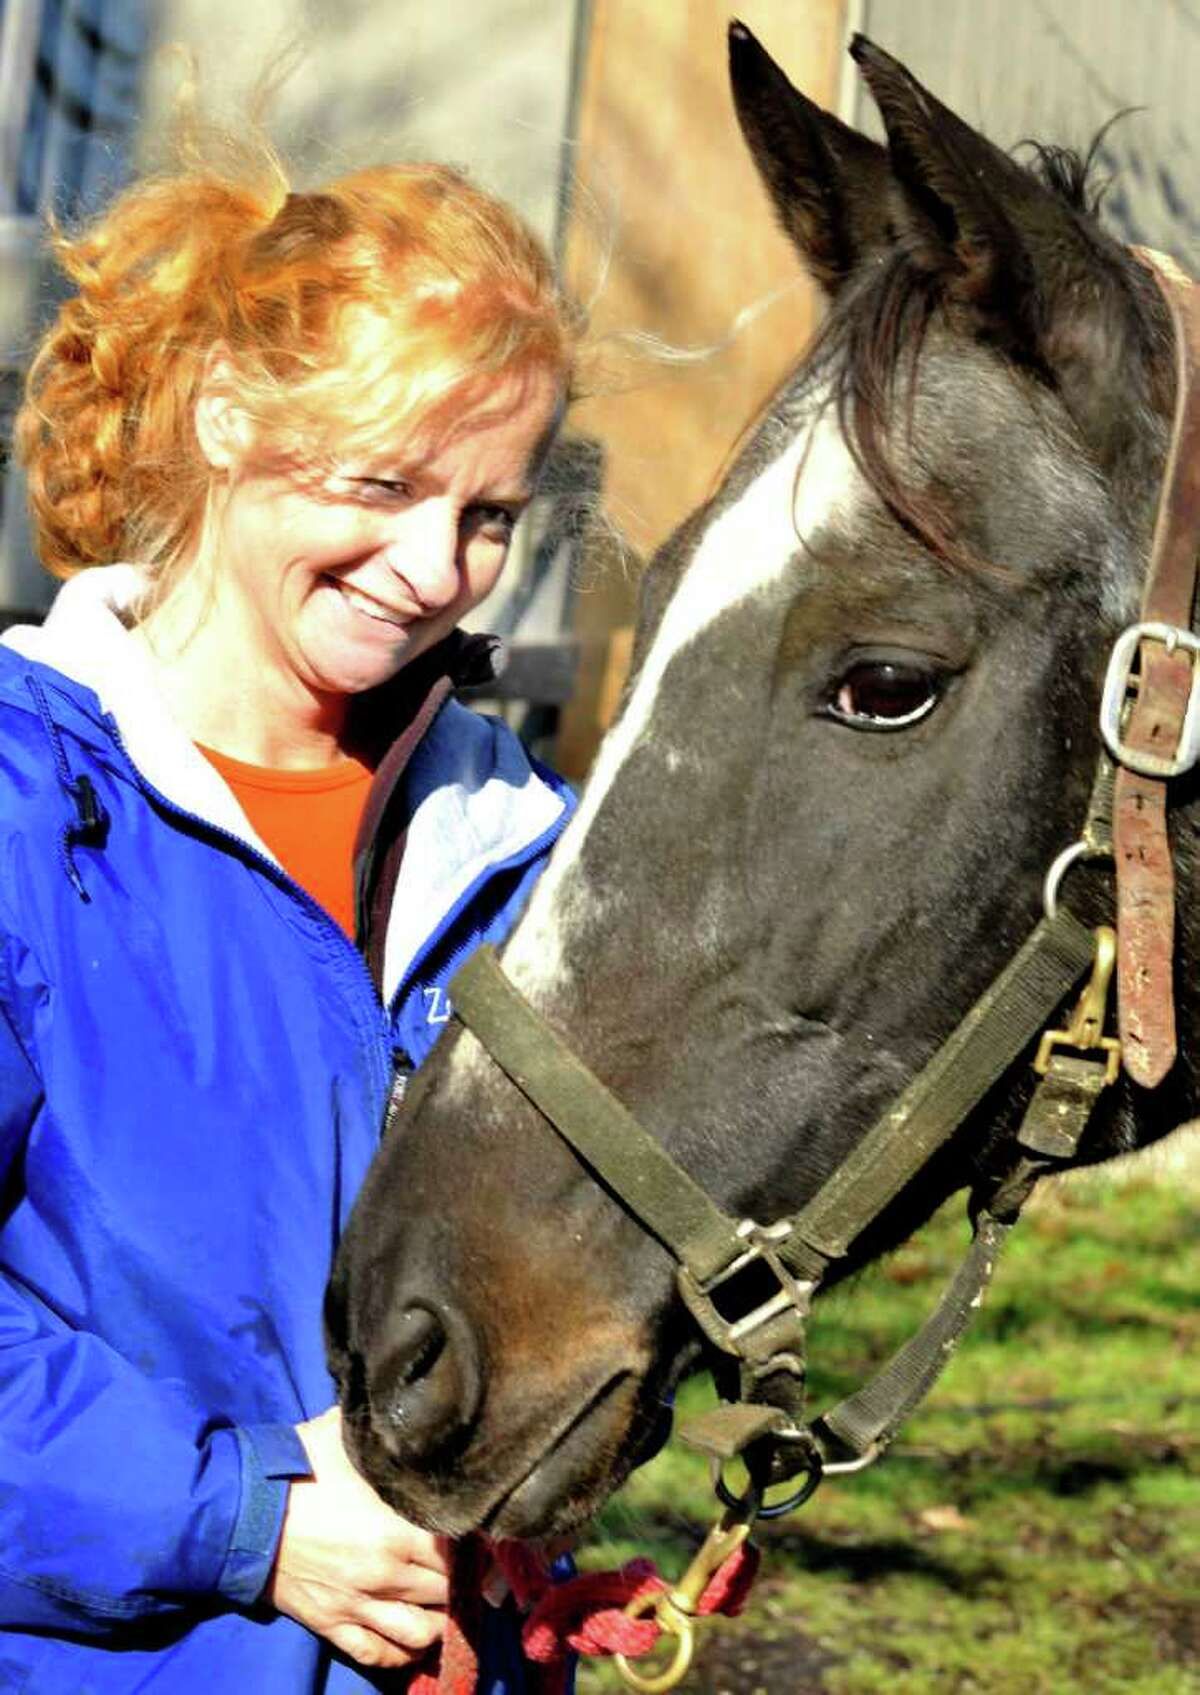 Annette Sullivan stands with Burma's Lady, the horse she rescued from slaughter, at her Zoar Ridge Stables in Newtown Thursday, Dec. 8, 2011.